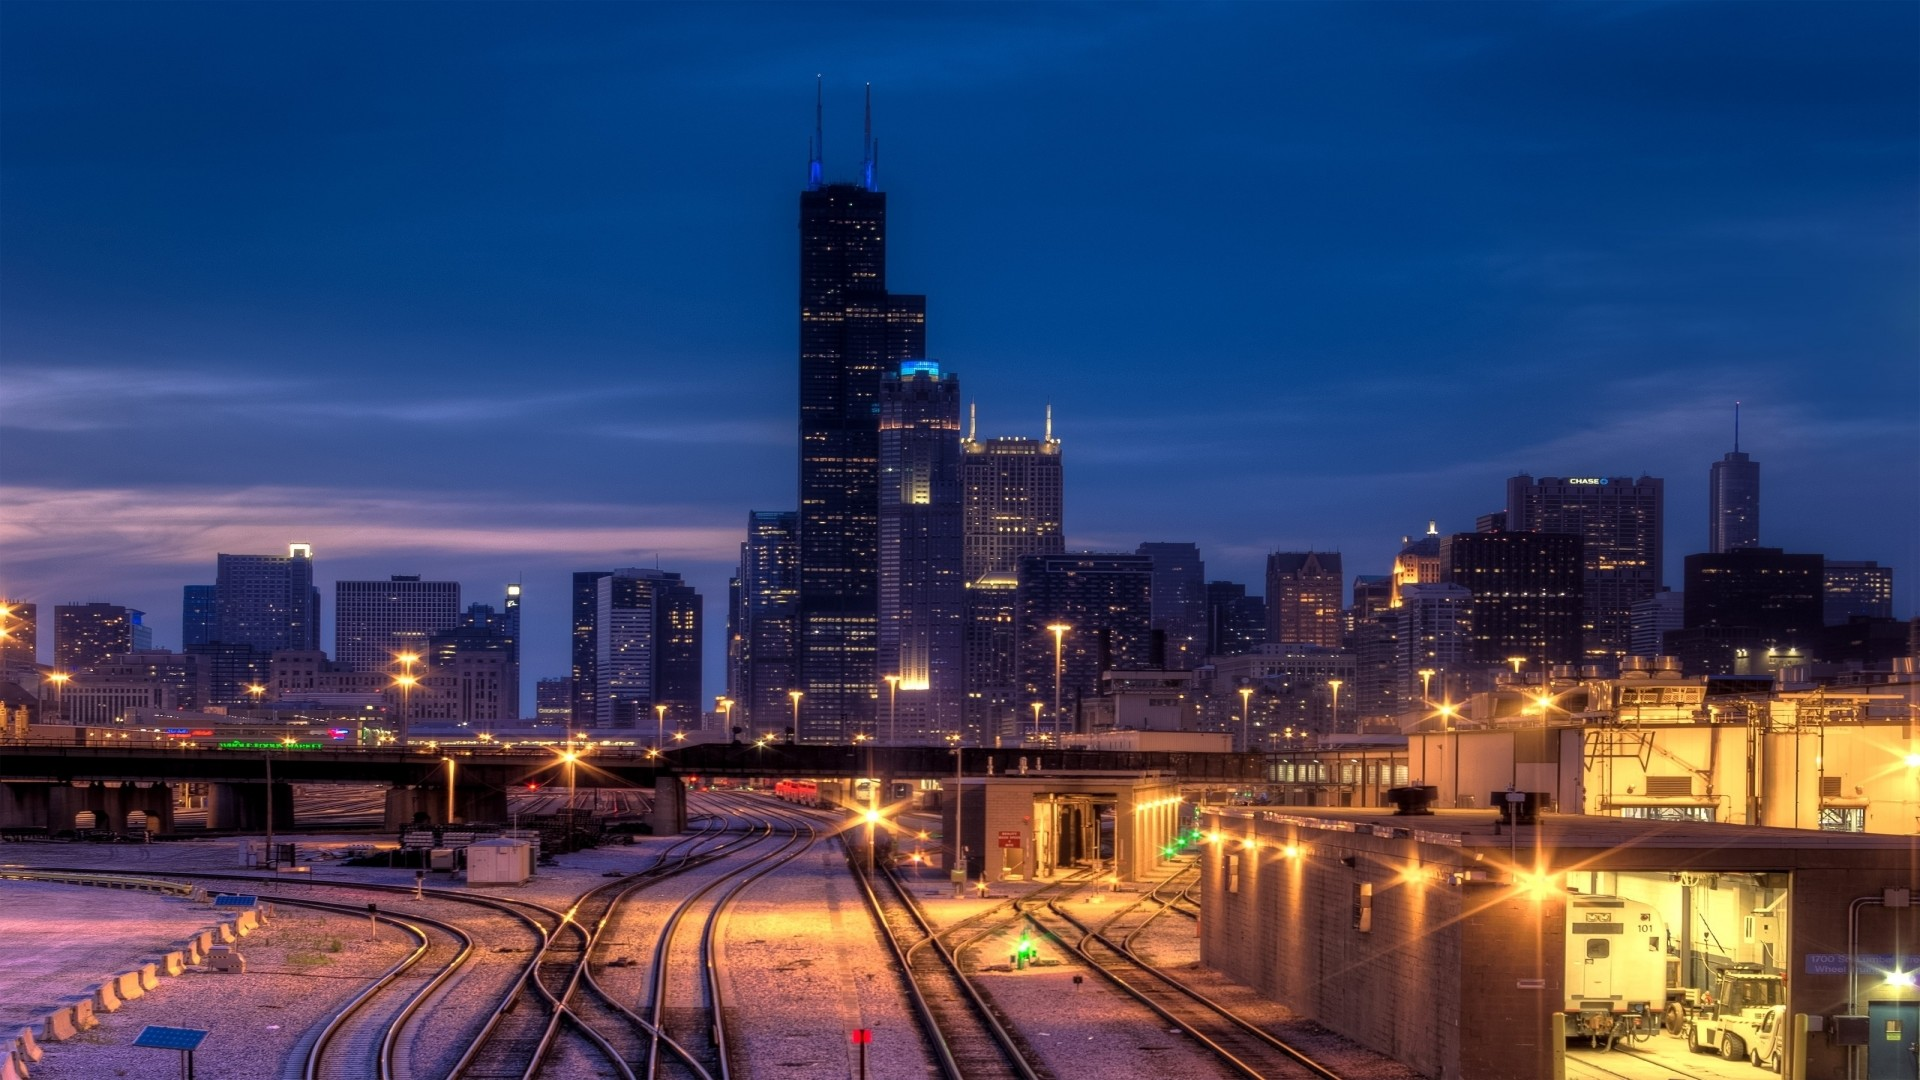 Chicago HD Wallpaper (74+ images)